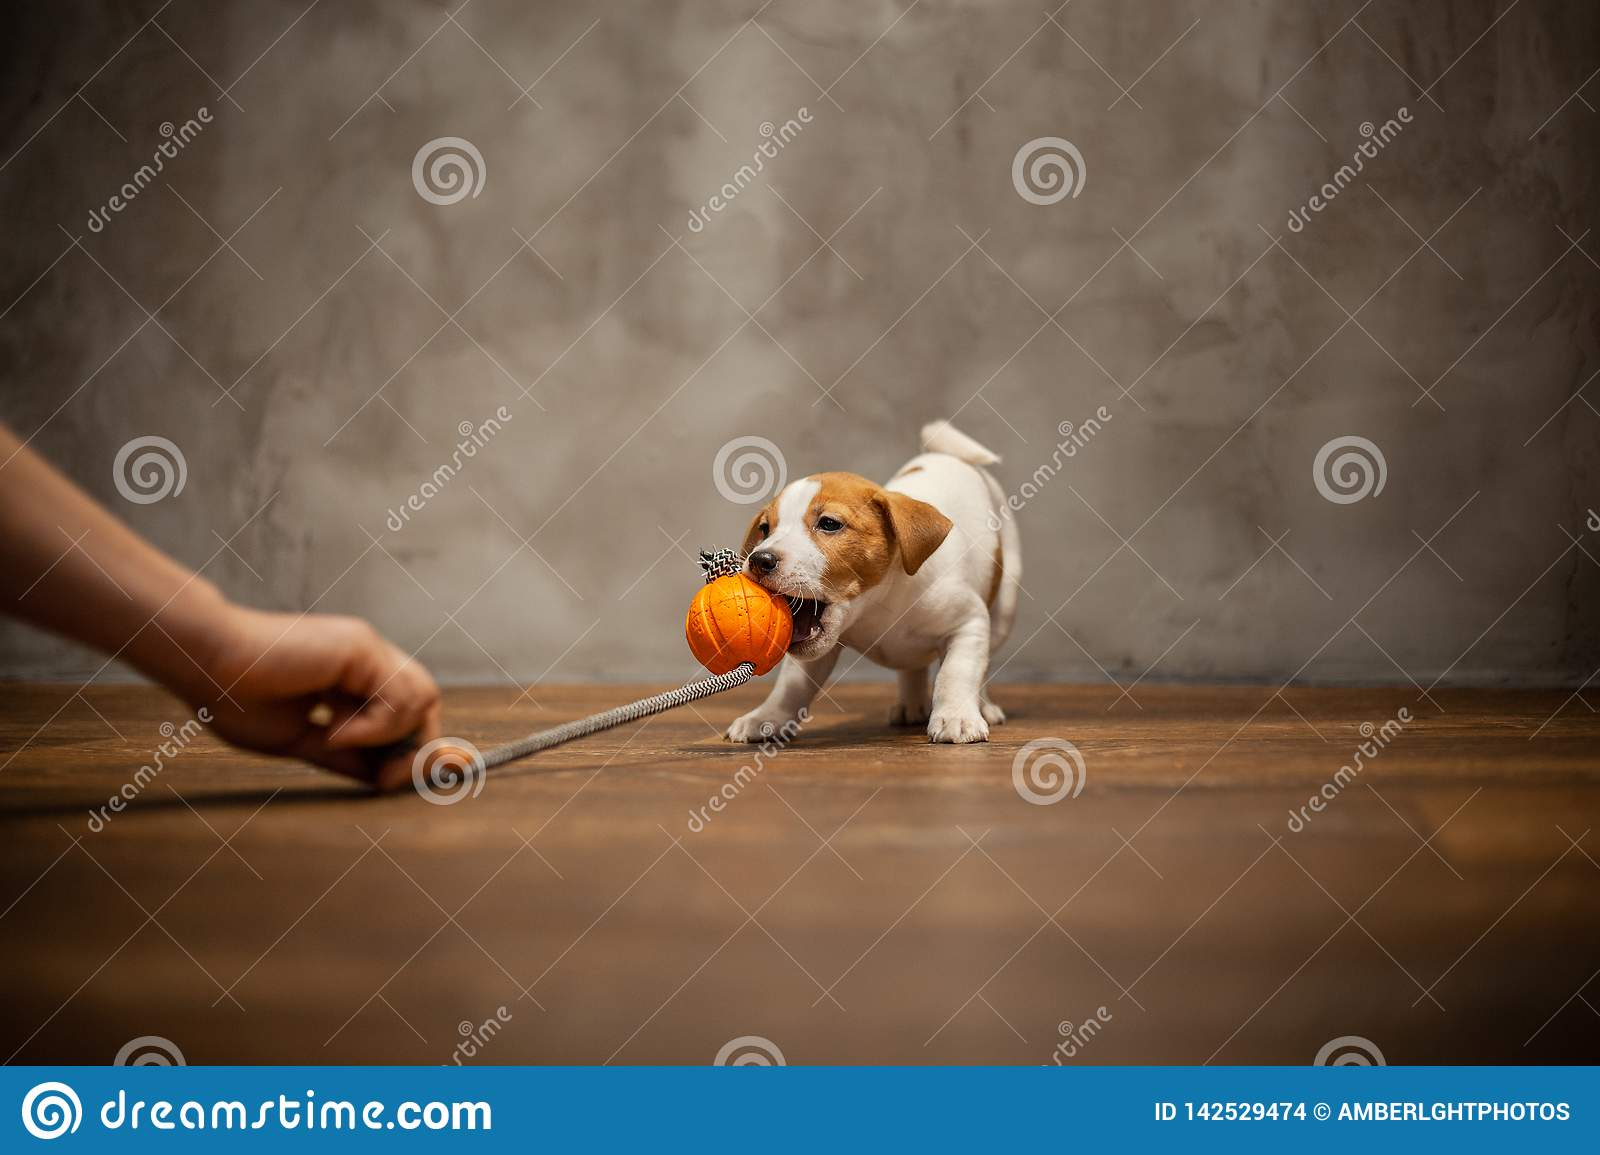 Jack Russell Terrier Puppy Pulls Teeth With An Orange Toy